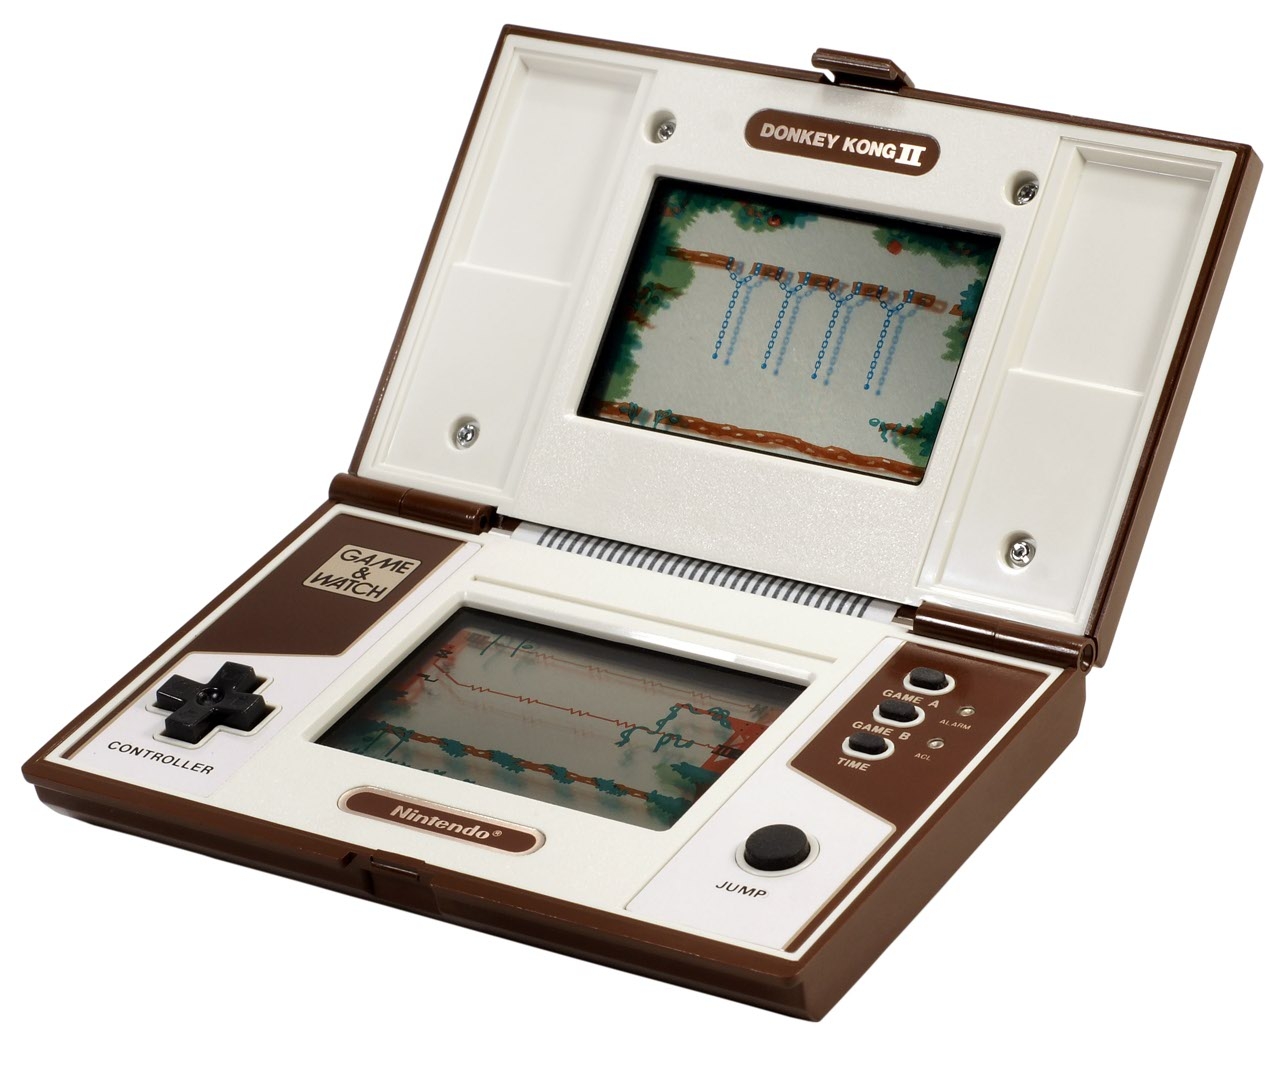 Game boy color quanto vale - Il Game Watch Presentata Nel 1980 E Predecessore Del Game Boy